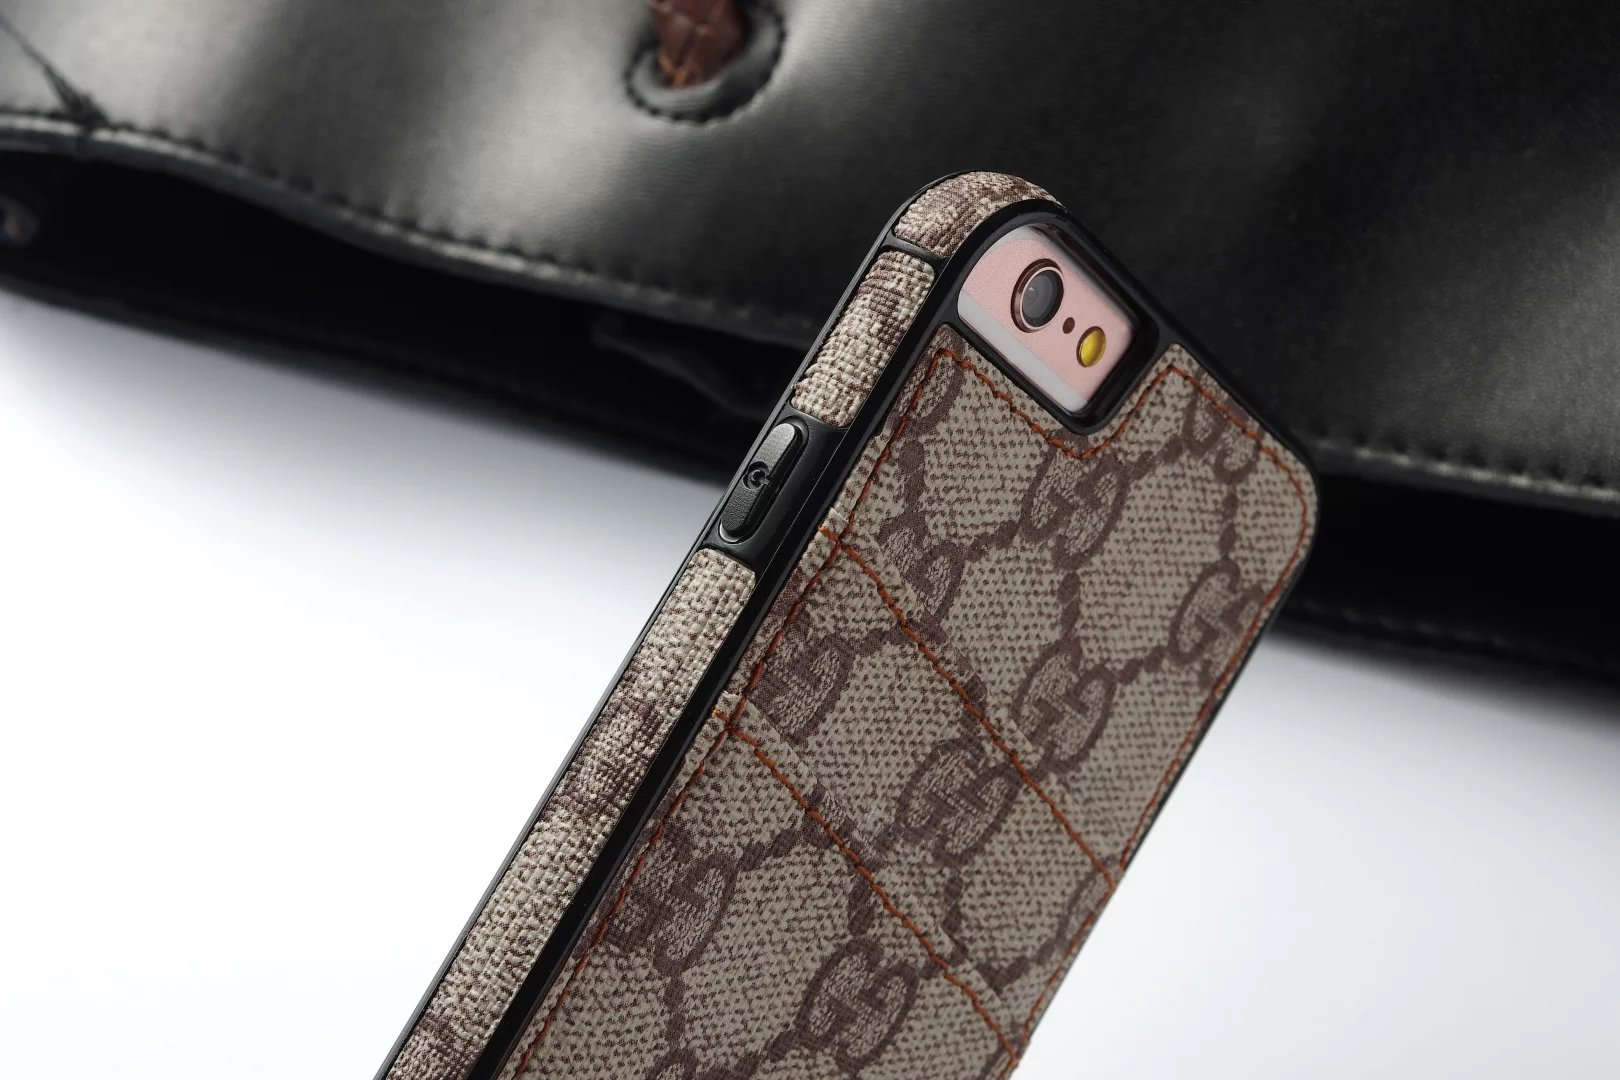 iphone hülle selbst designen iphone hülle leder Louis Vuitton iphone 8 Plus hüllen handyhülle bedrucken handyhülle iphone iphone 8 Plus hülle mit sichtfenster iphone 2 hülle designer iphone 8 Plus hülle iphone handyhülle